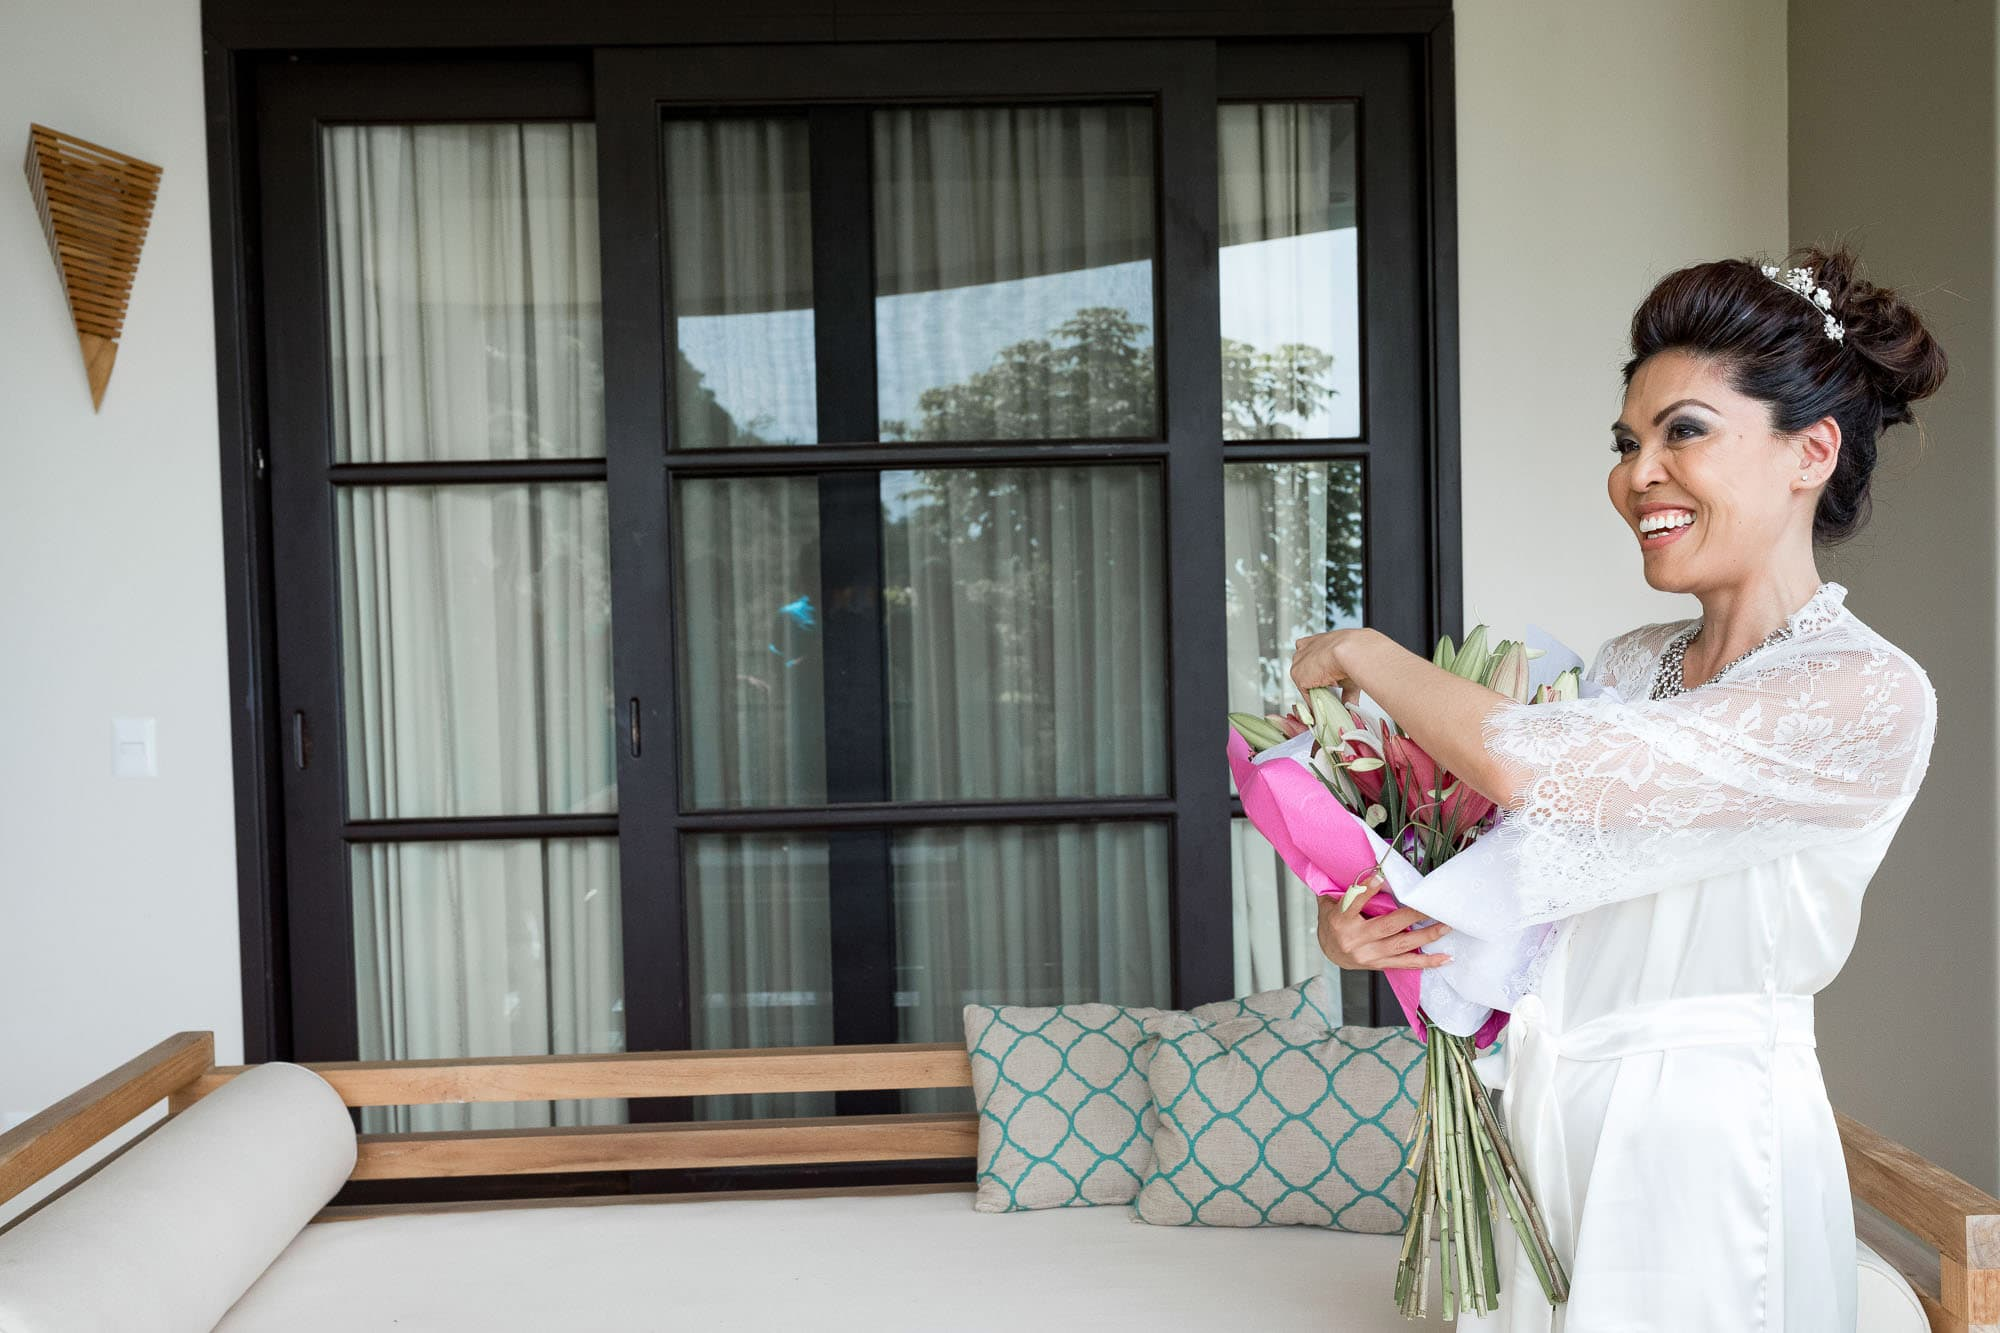 The bride with her gift bouquet